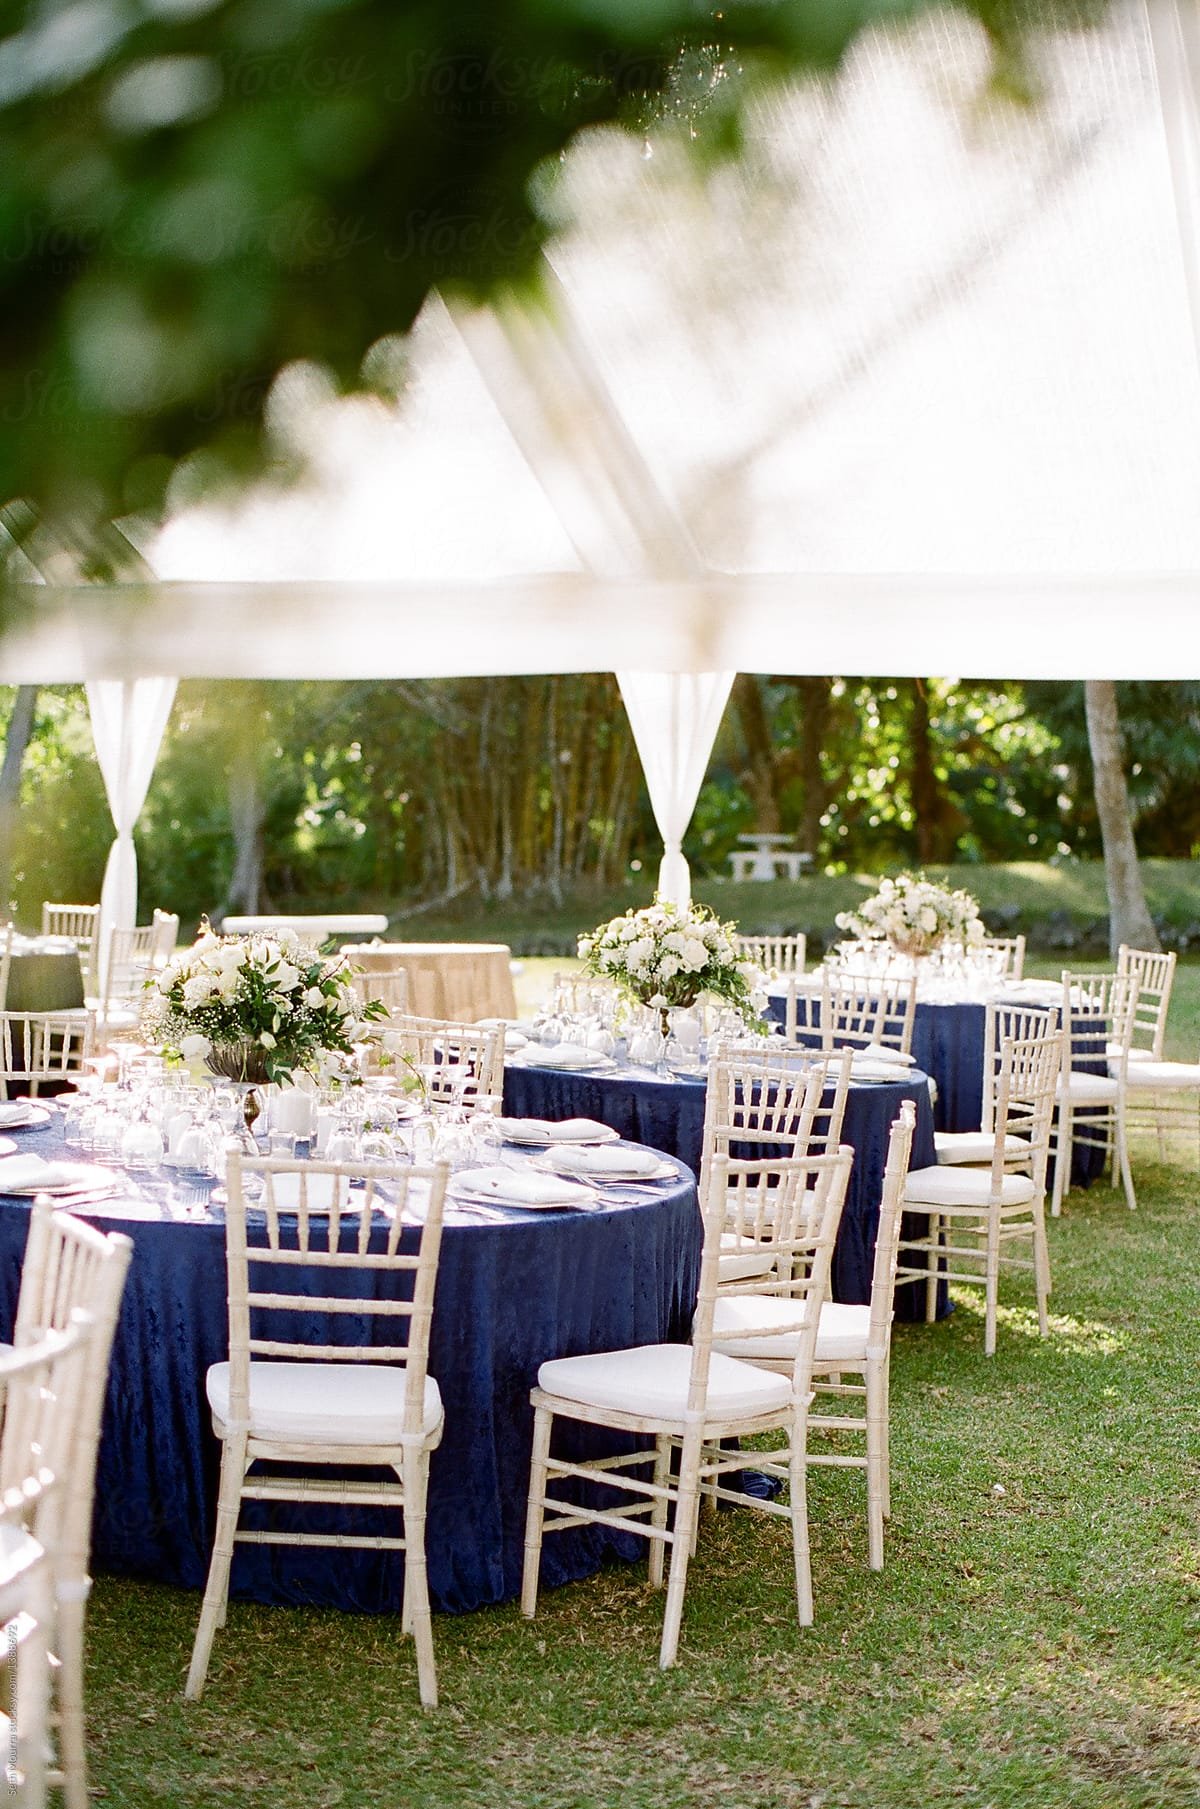 Ordinaire Elegant Outdoor Wedding Reception